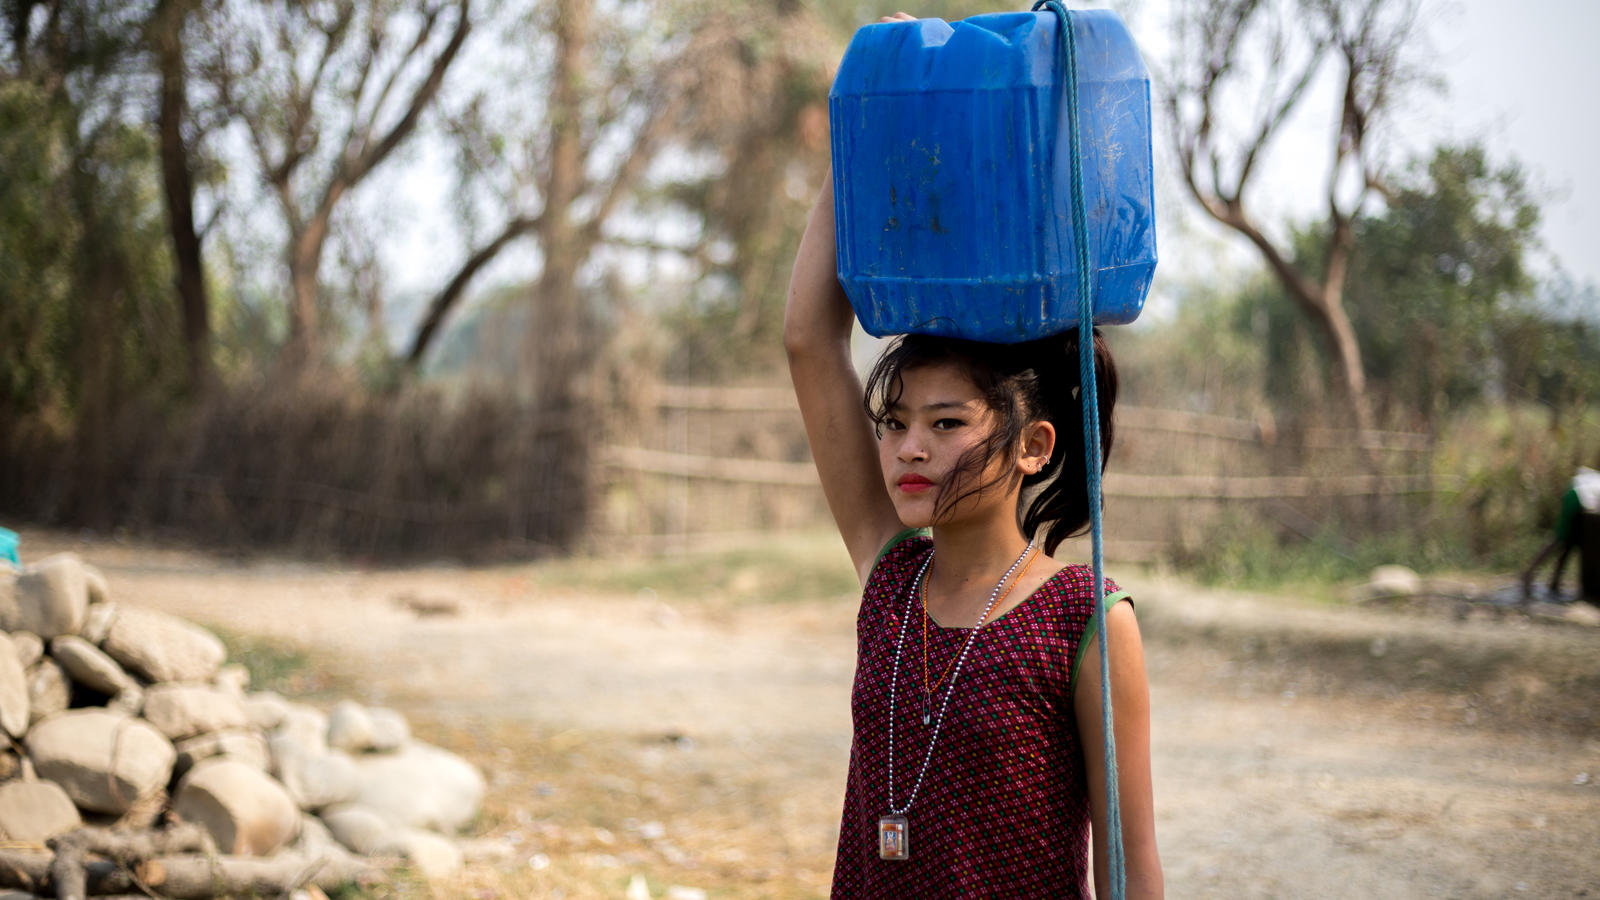 Samjhana carries home a jerry can in Nepal.